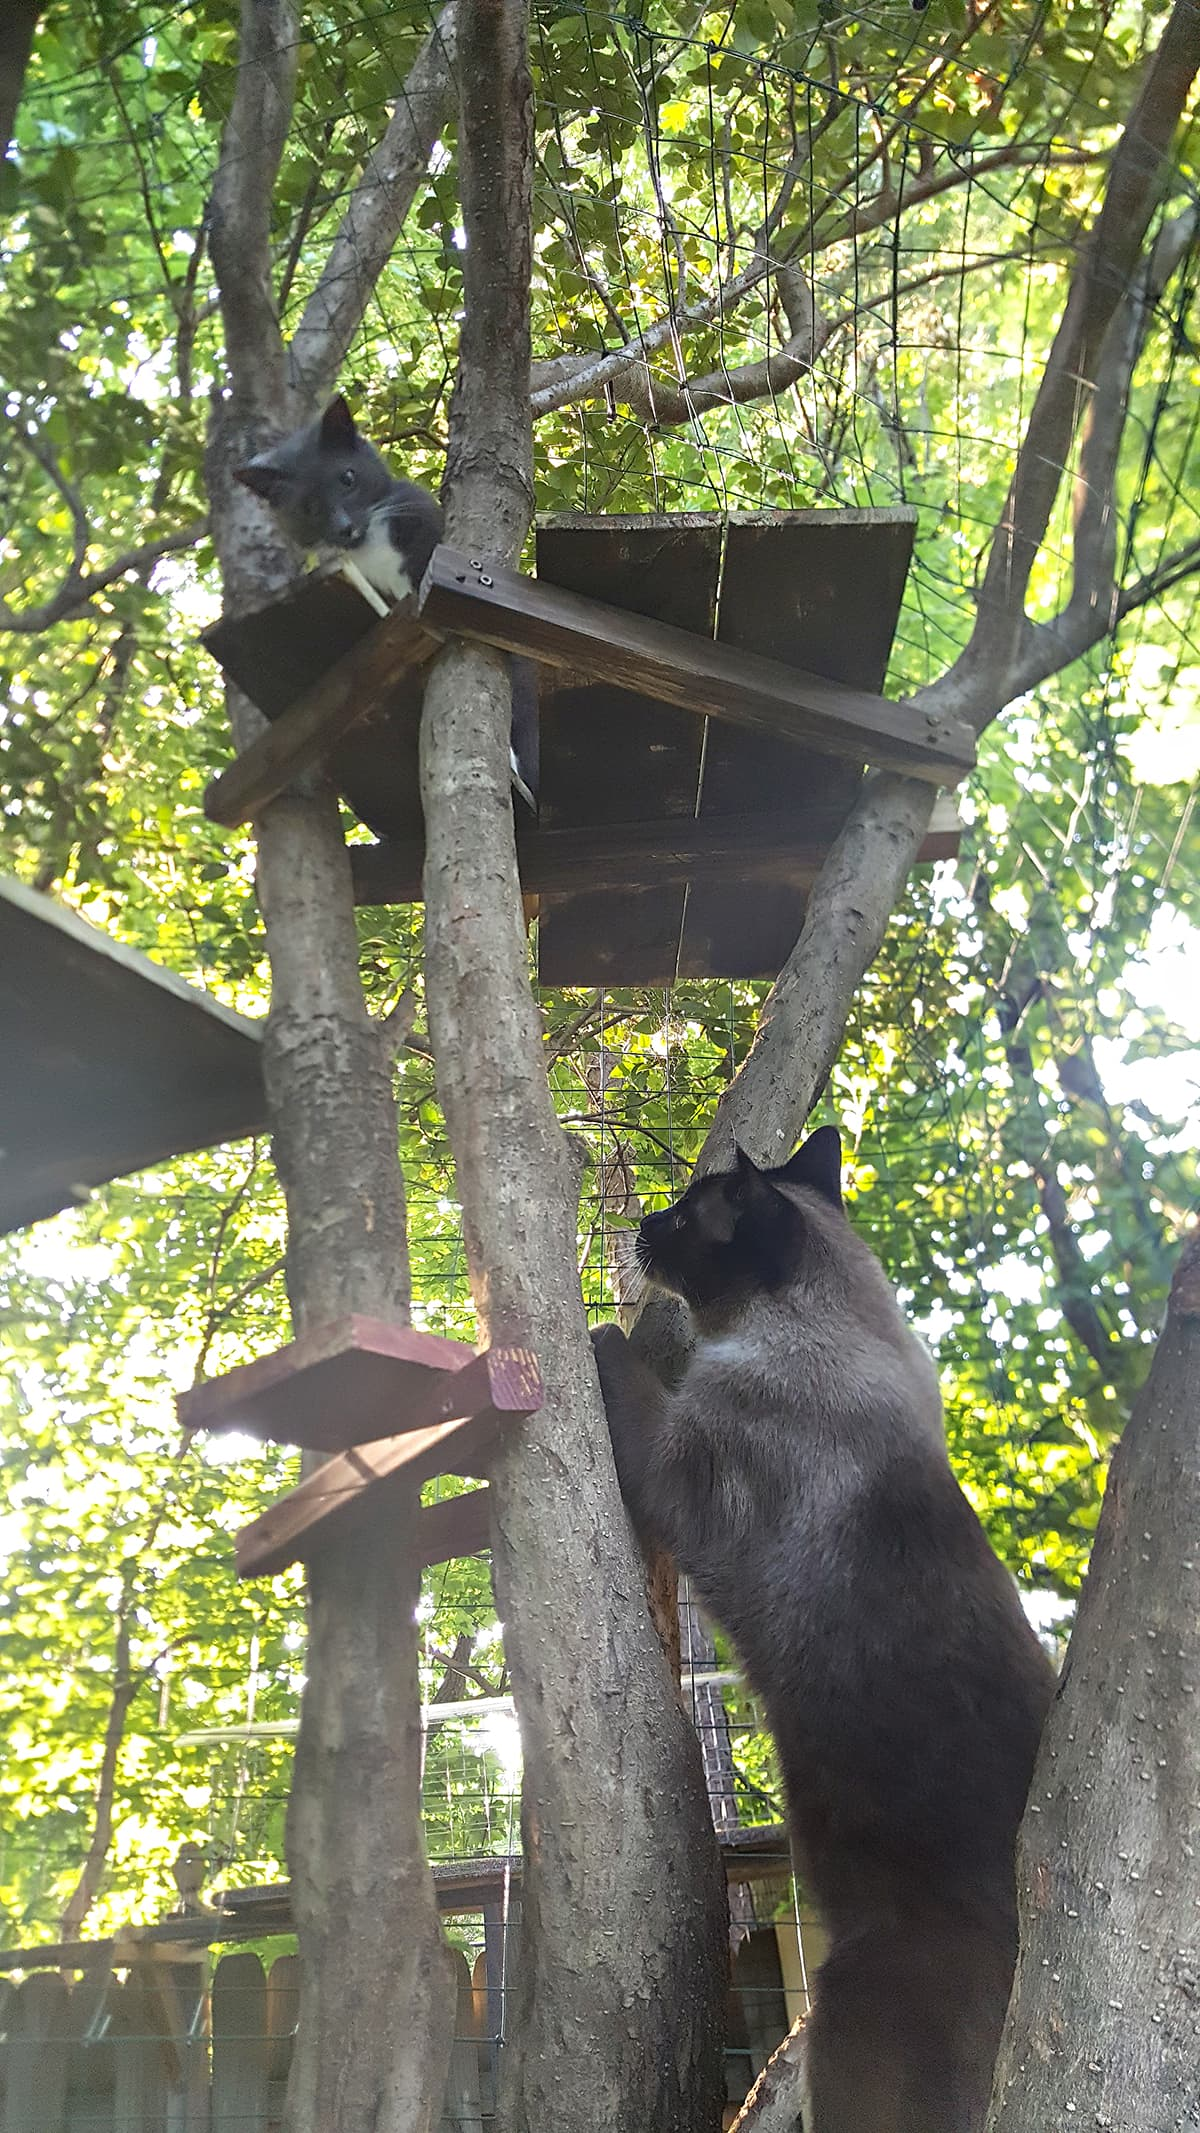 cats climbing in their outside cat enclosures